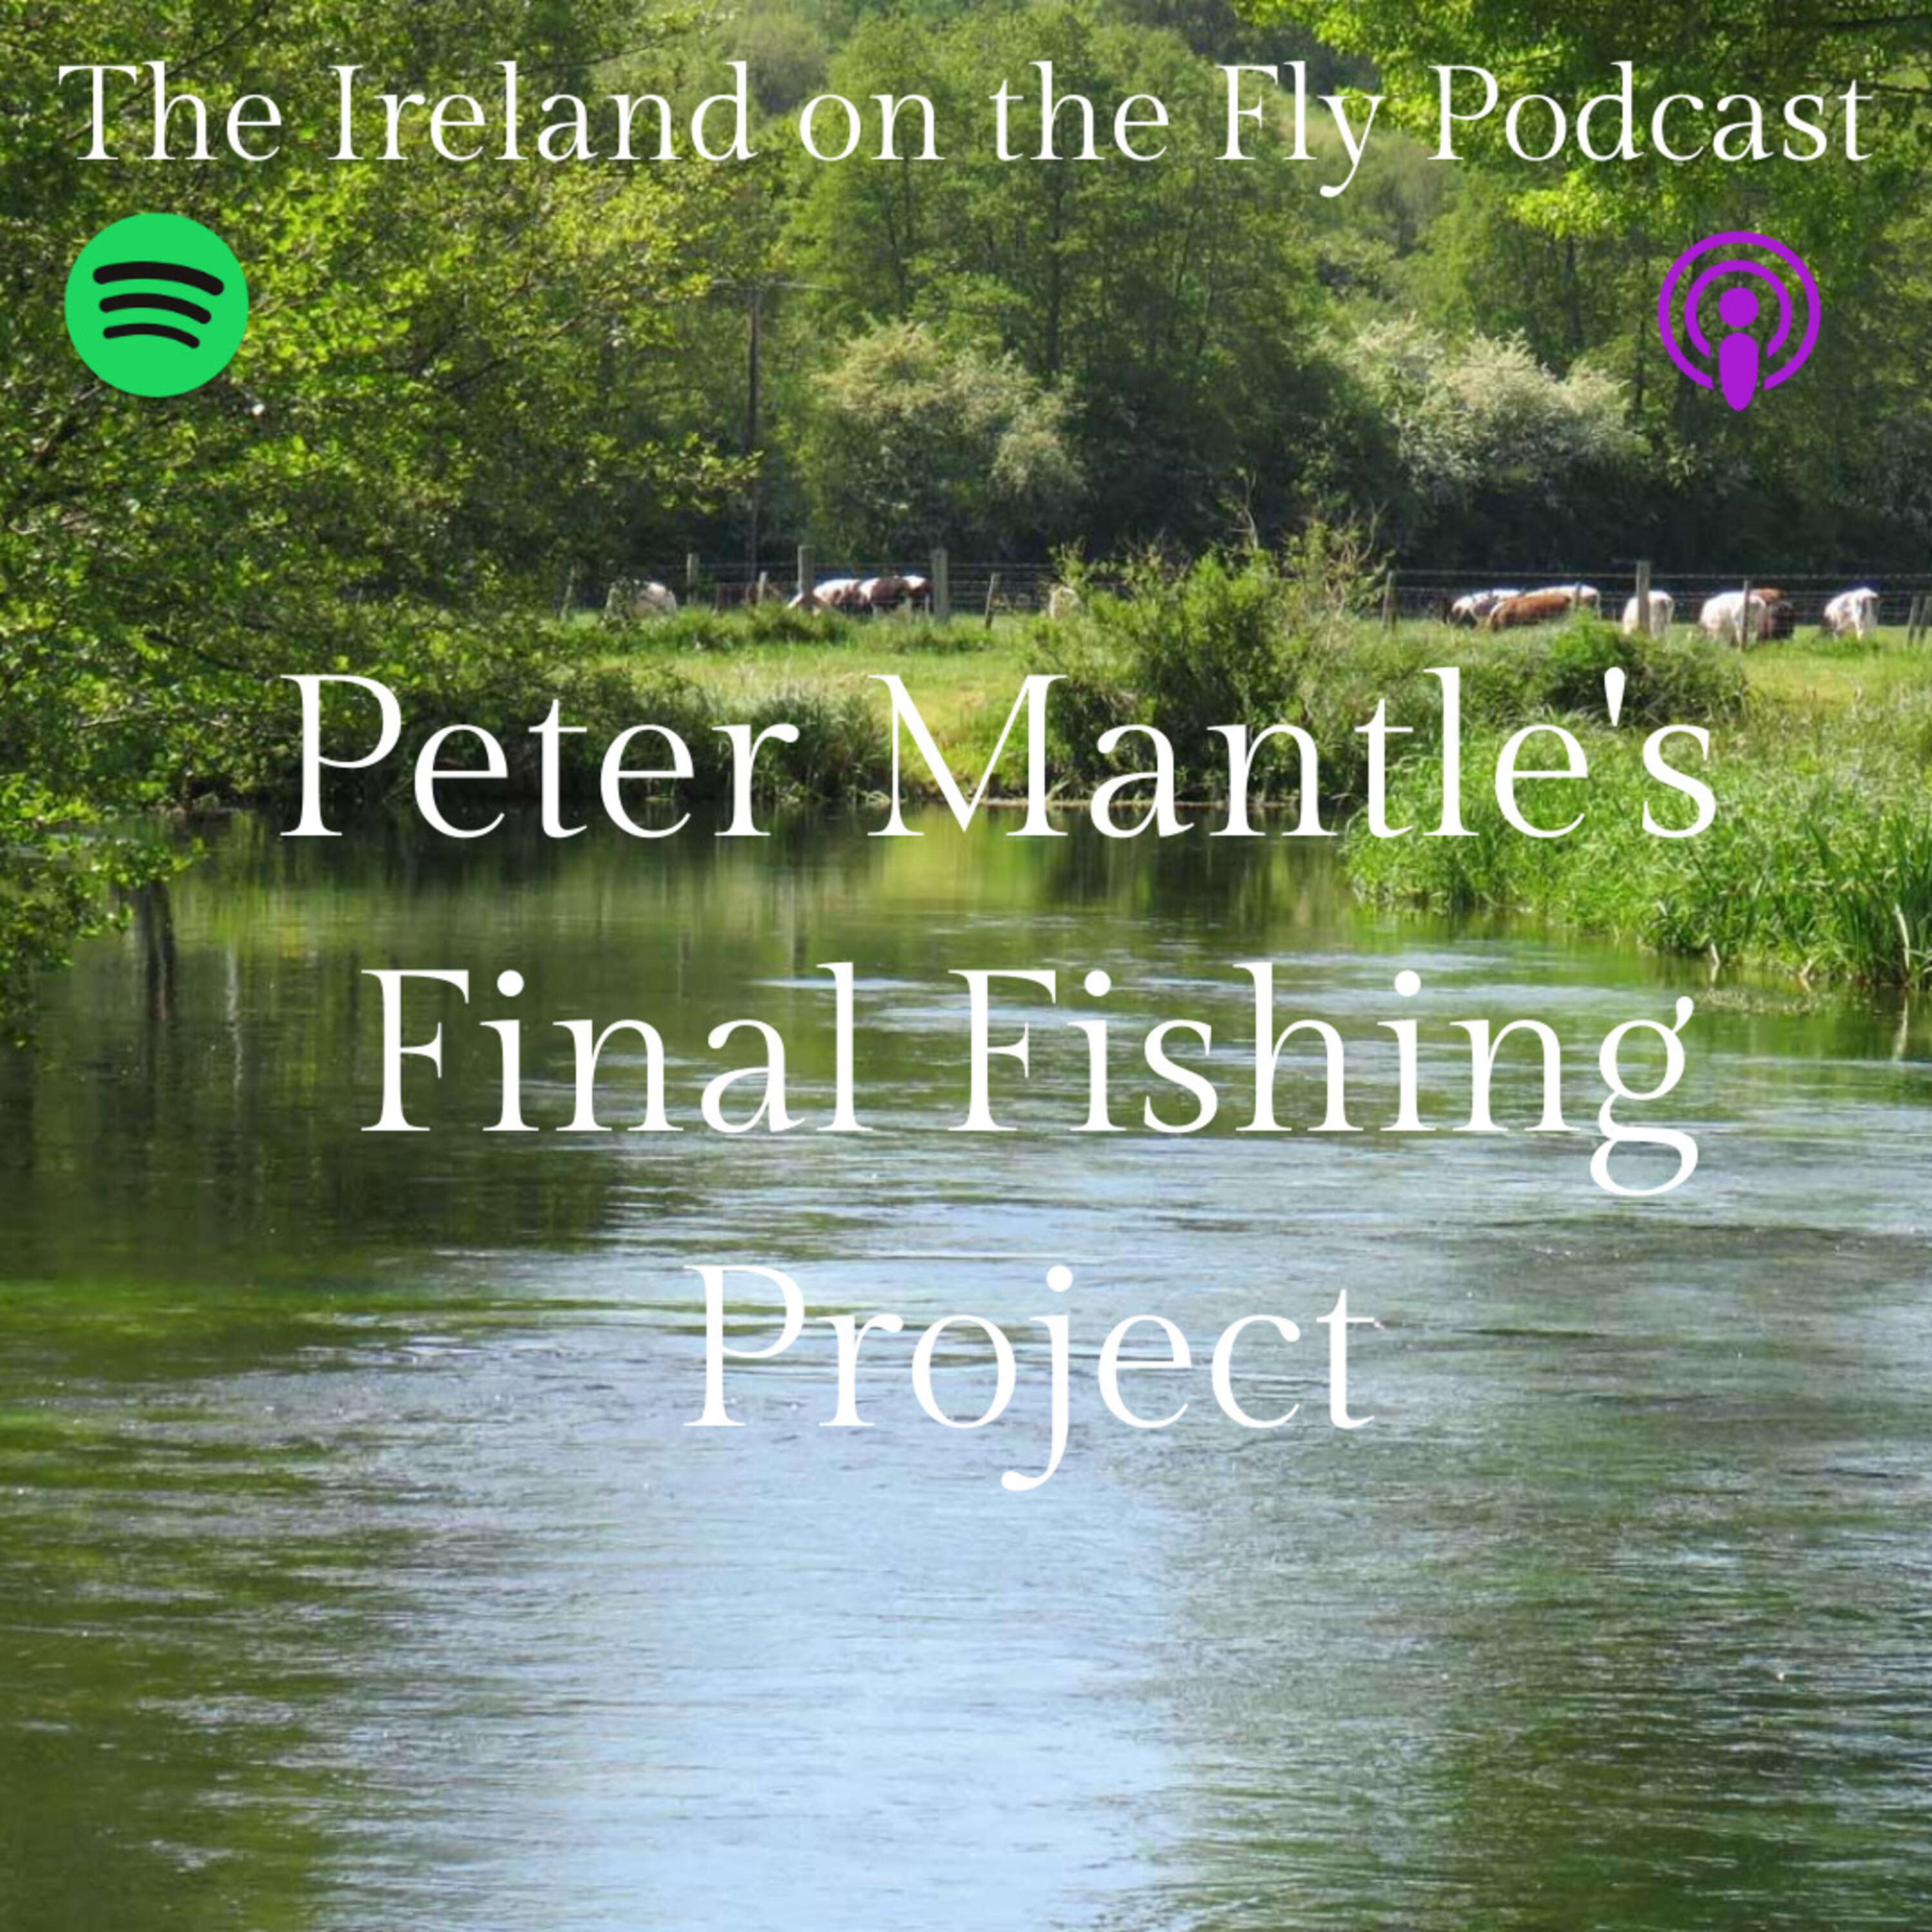 'Building a business based on fishing is a minor form of lunacy' Peter Mantle's Final Fishing Project